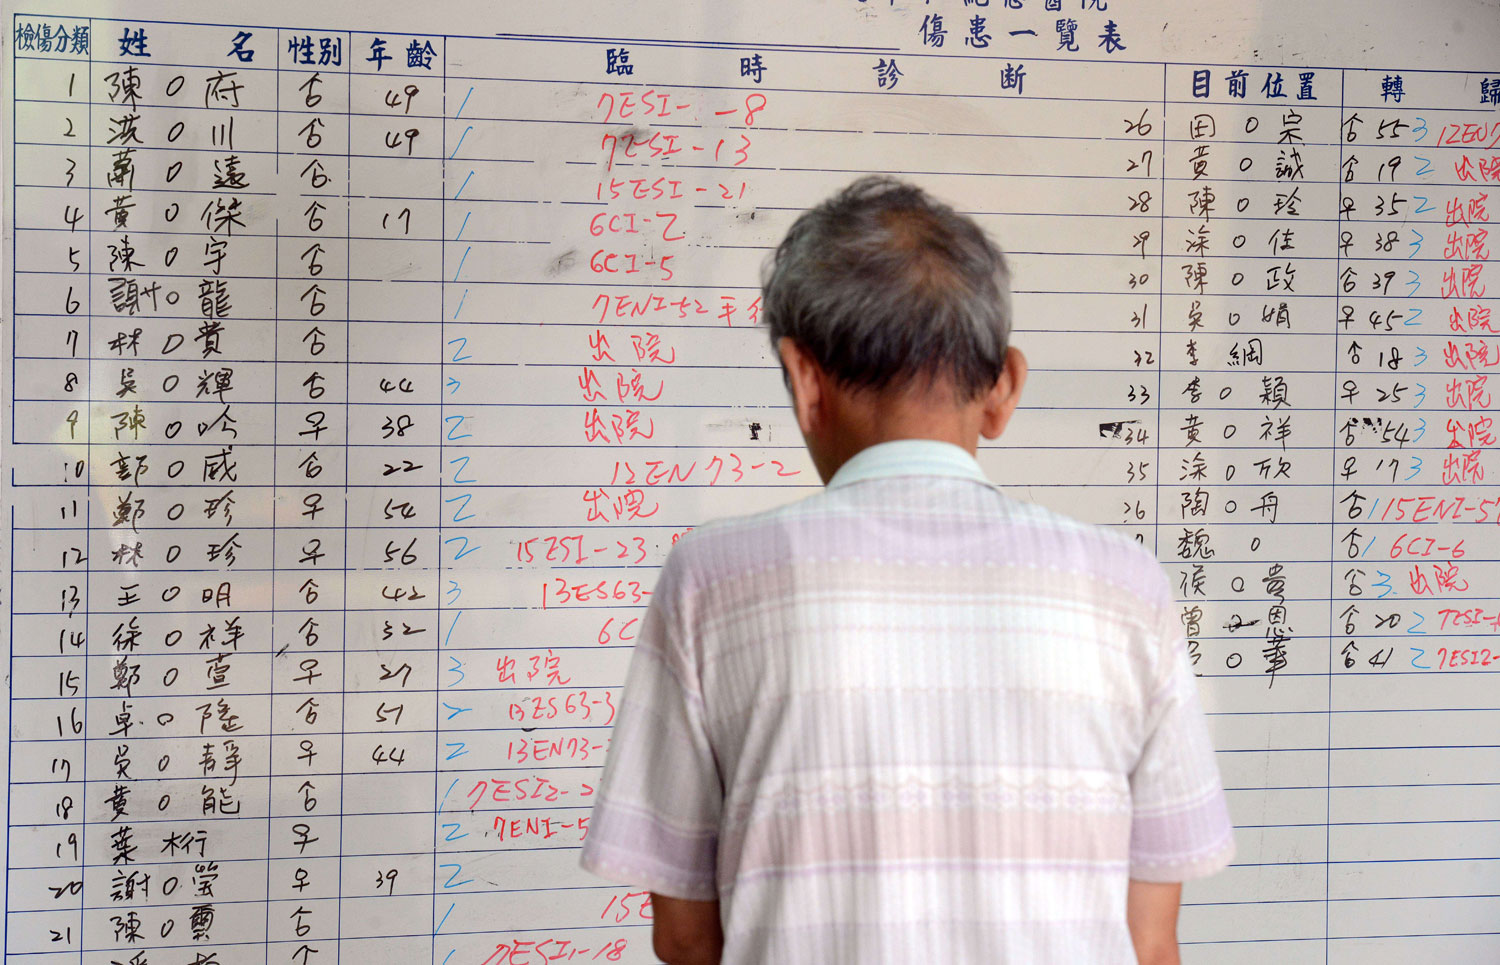 A local resident checks the names of injured survivors at a hospital after gas explosions ripped through a neighbourhood in the southern Taiwan city of Kaohsiung on Aug. 1, 2014.